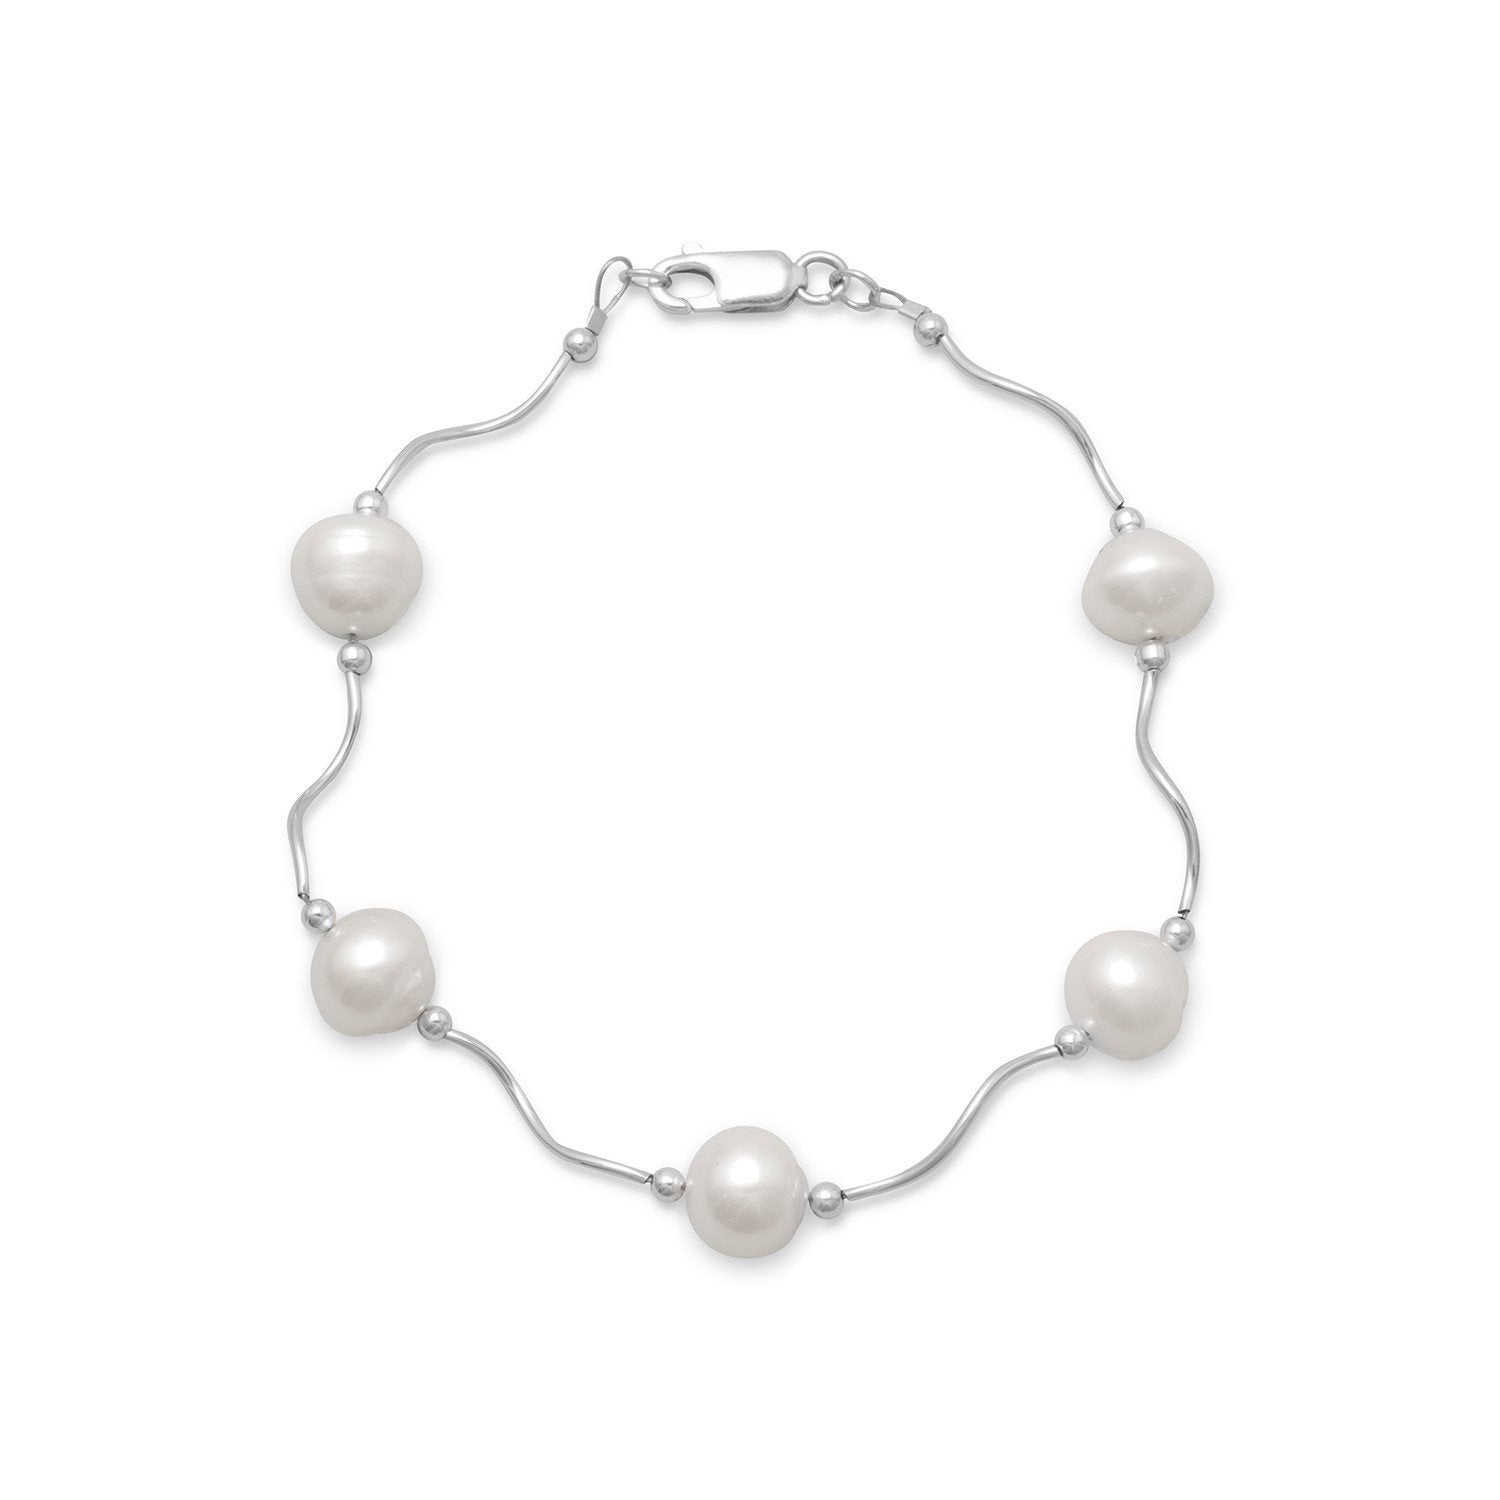 "925 Sterling Silver 8"" Wave Design Bracelet with Cultured Freshwater Pearls"